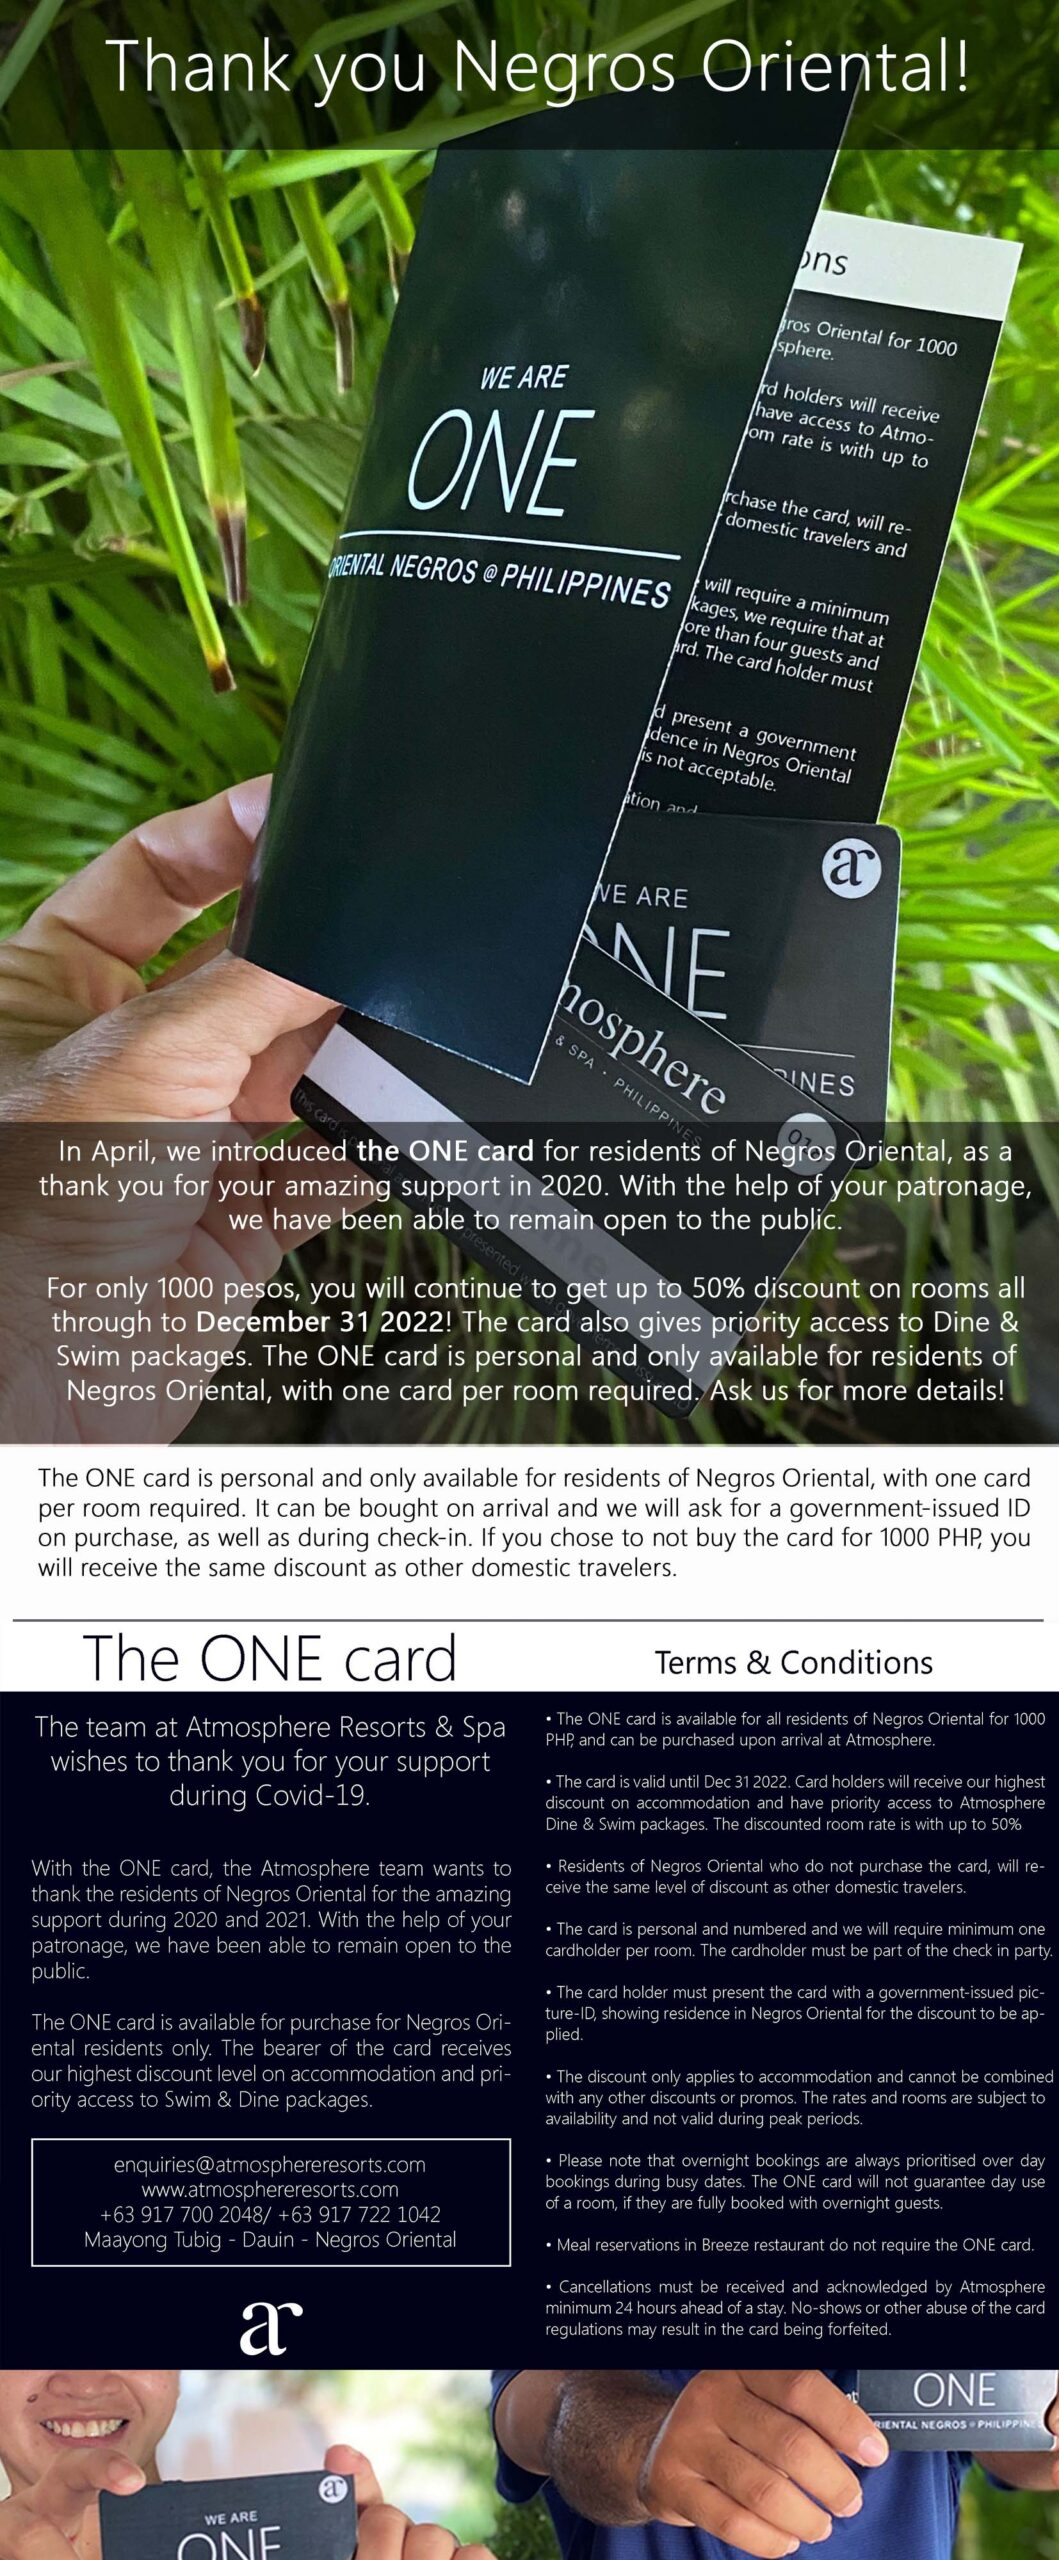 The ONE card for residents of Negros Oriental gives great benefits at Atmosphere